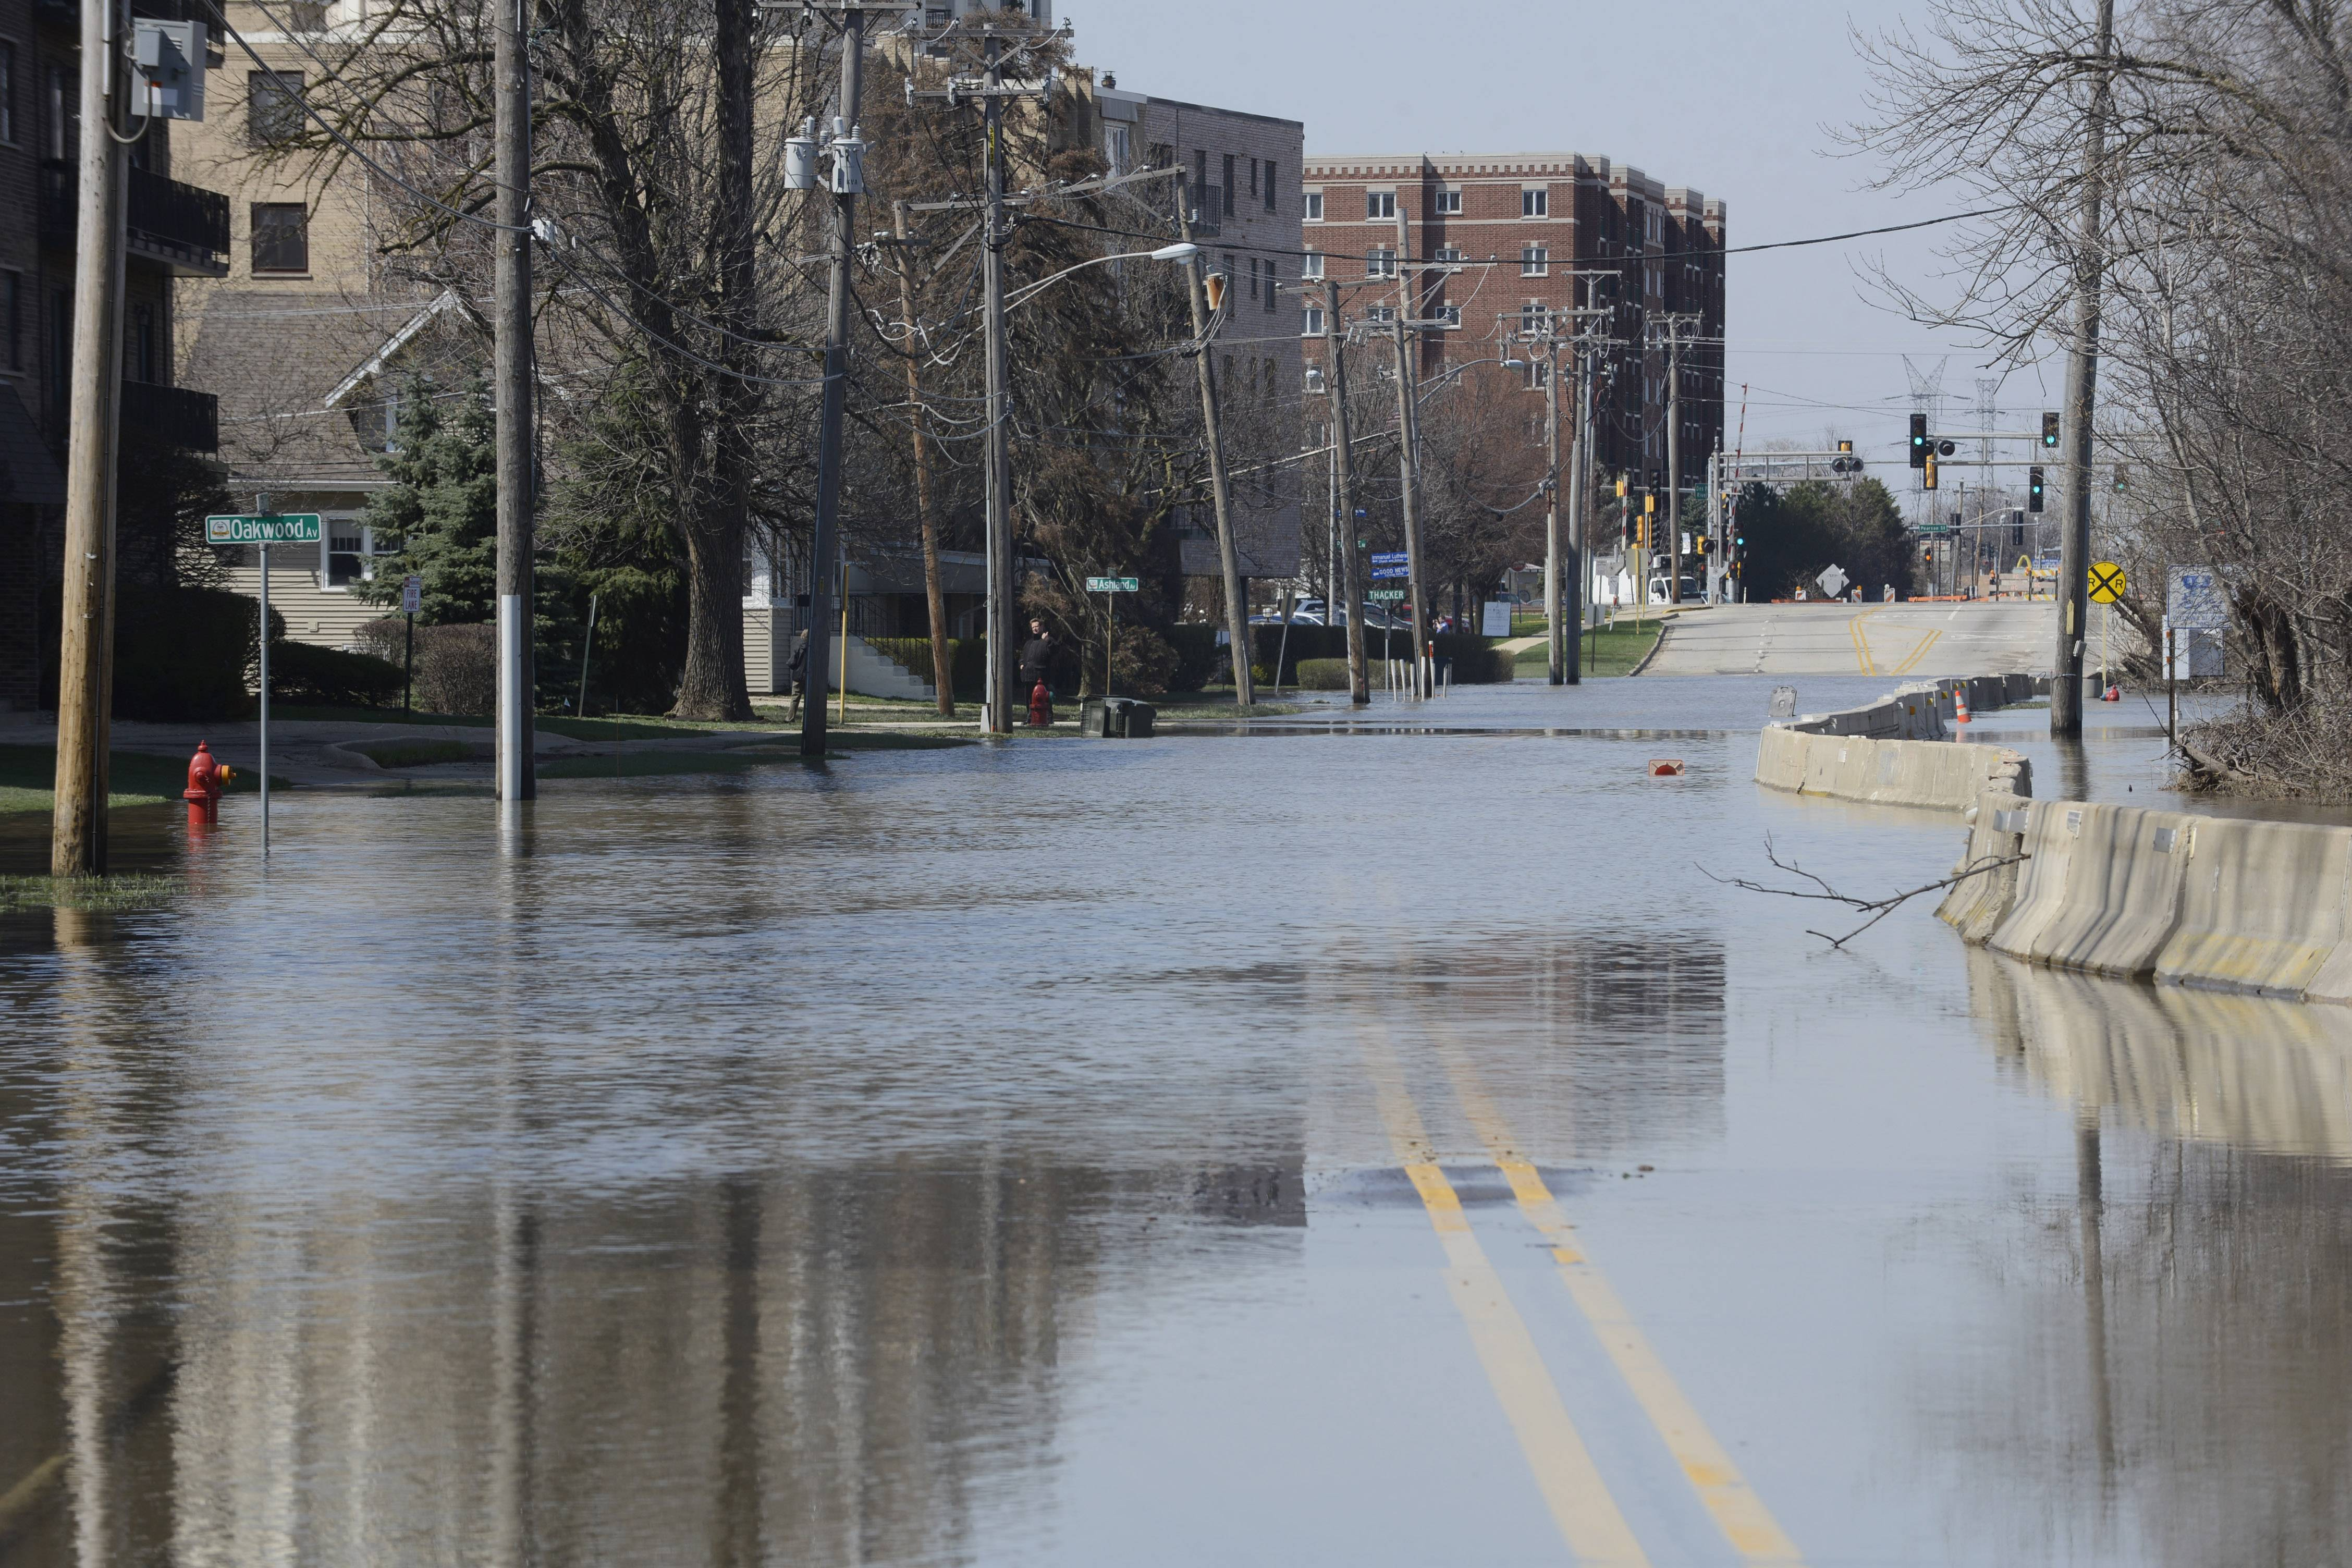 U.S. Housing and Urban Development announced Monday it will provide nearly $64 million in additional disaster relief to help suburban Cook and DuPage County communities still recovering from last spring's record storms that flooded areas across the region, including a portion of downtown Des Plaines.